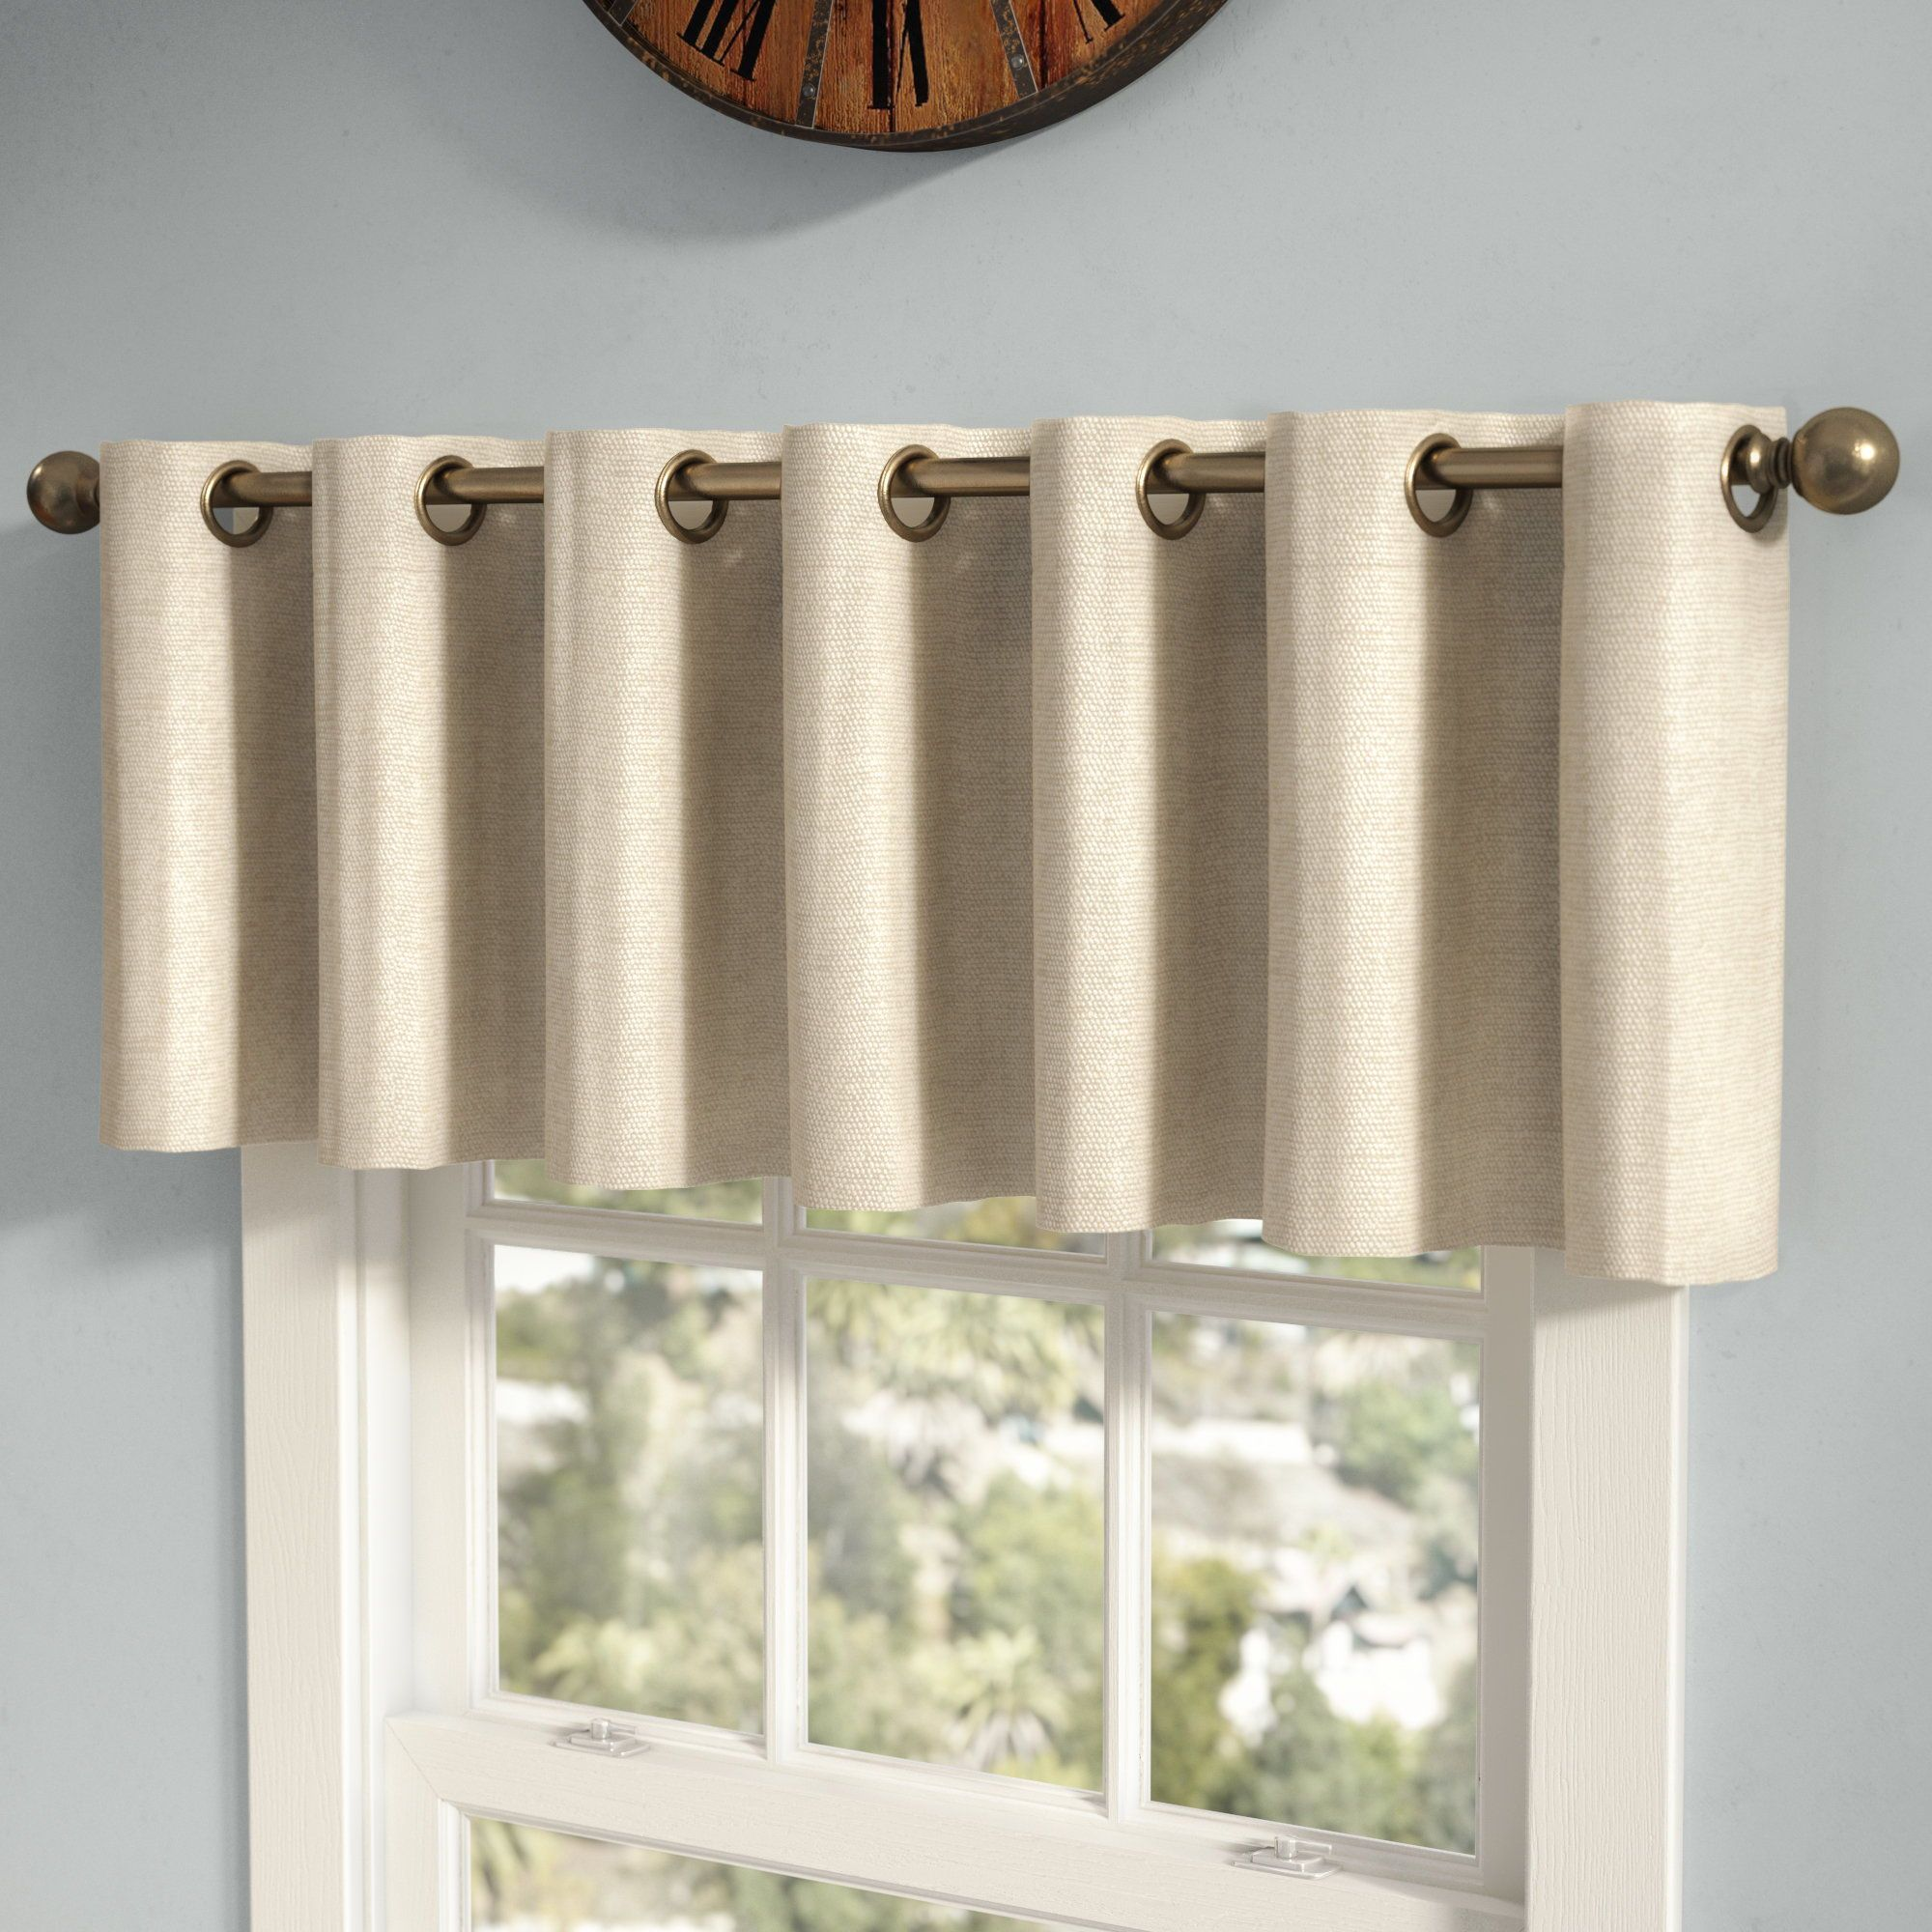 Farmhouse Valances Rustic Valances Farmhouse Goals In 2020 Farmhouse Valances Window Valance Rustic Valances